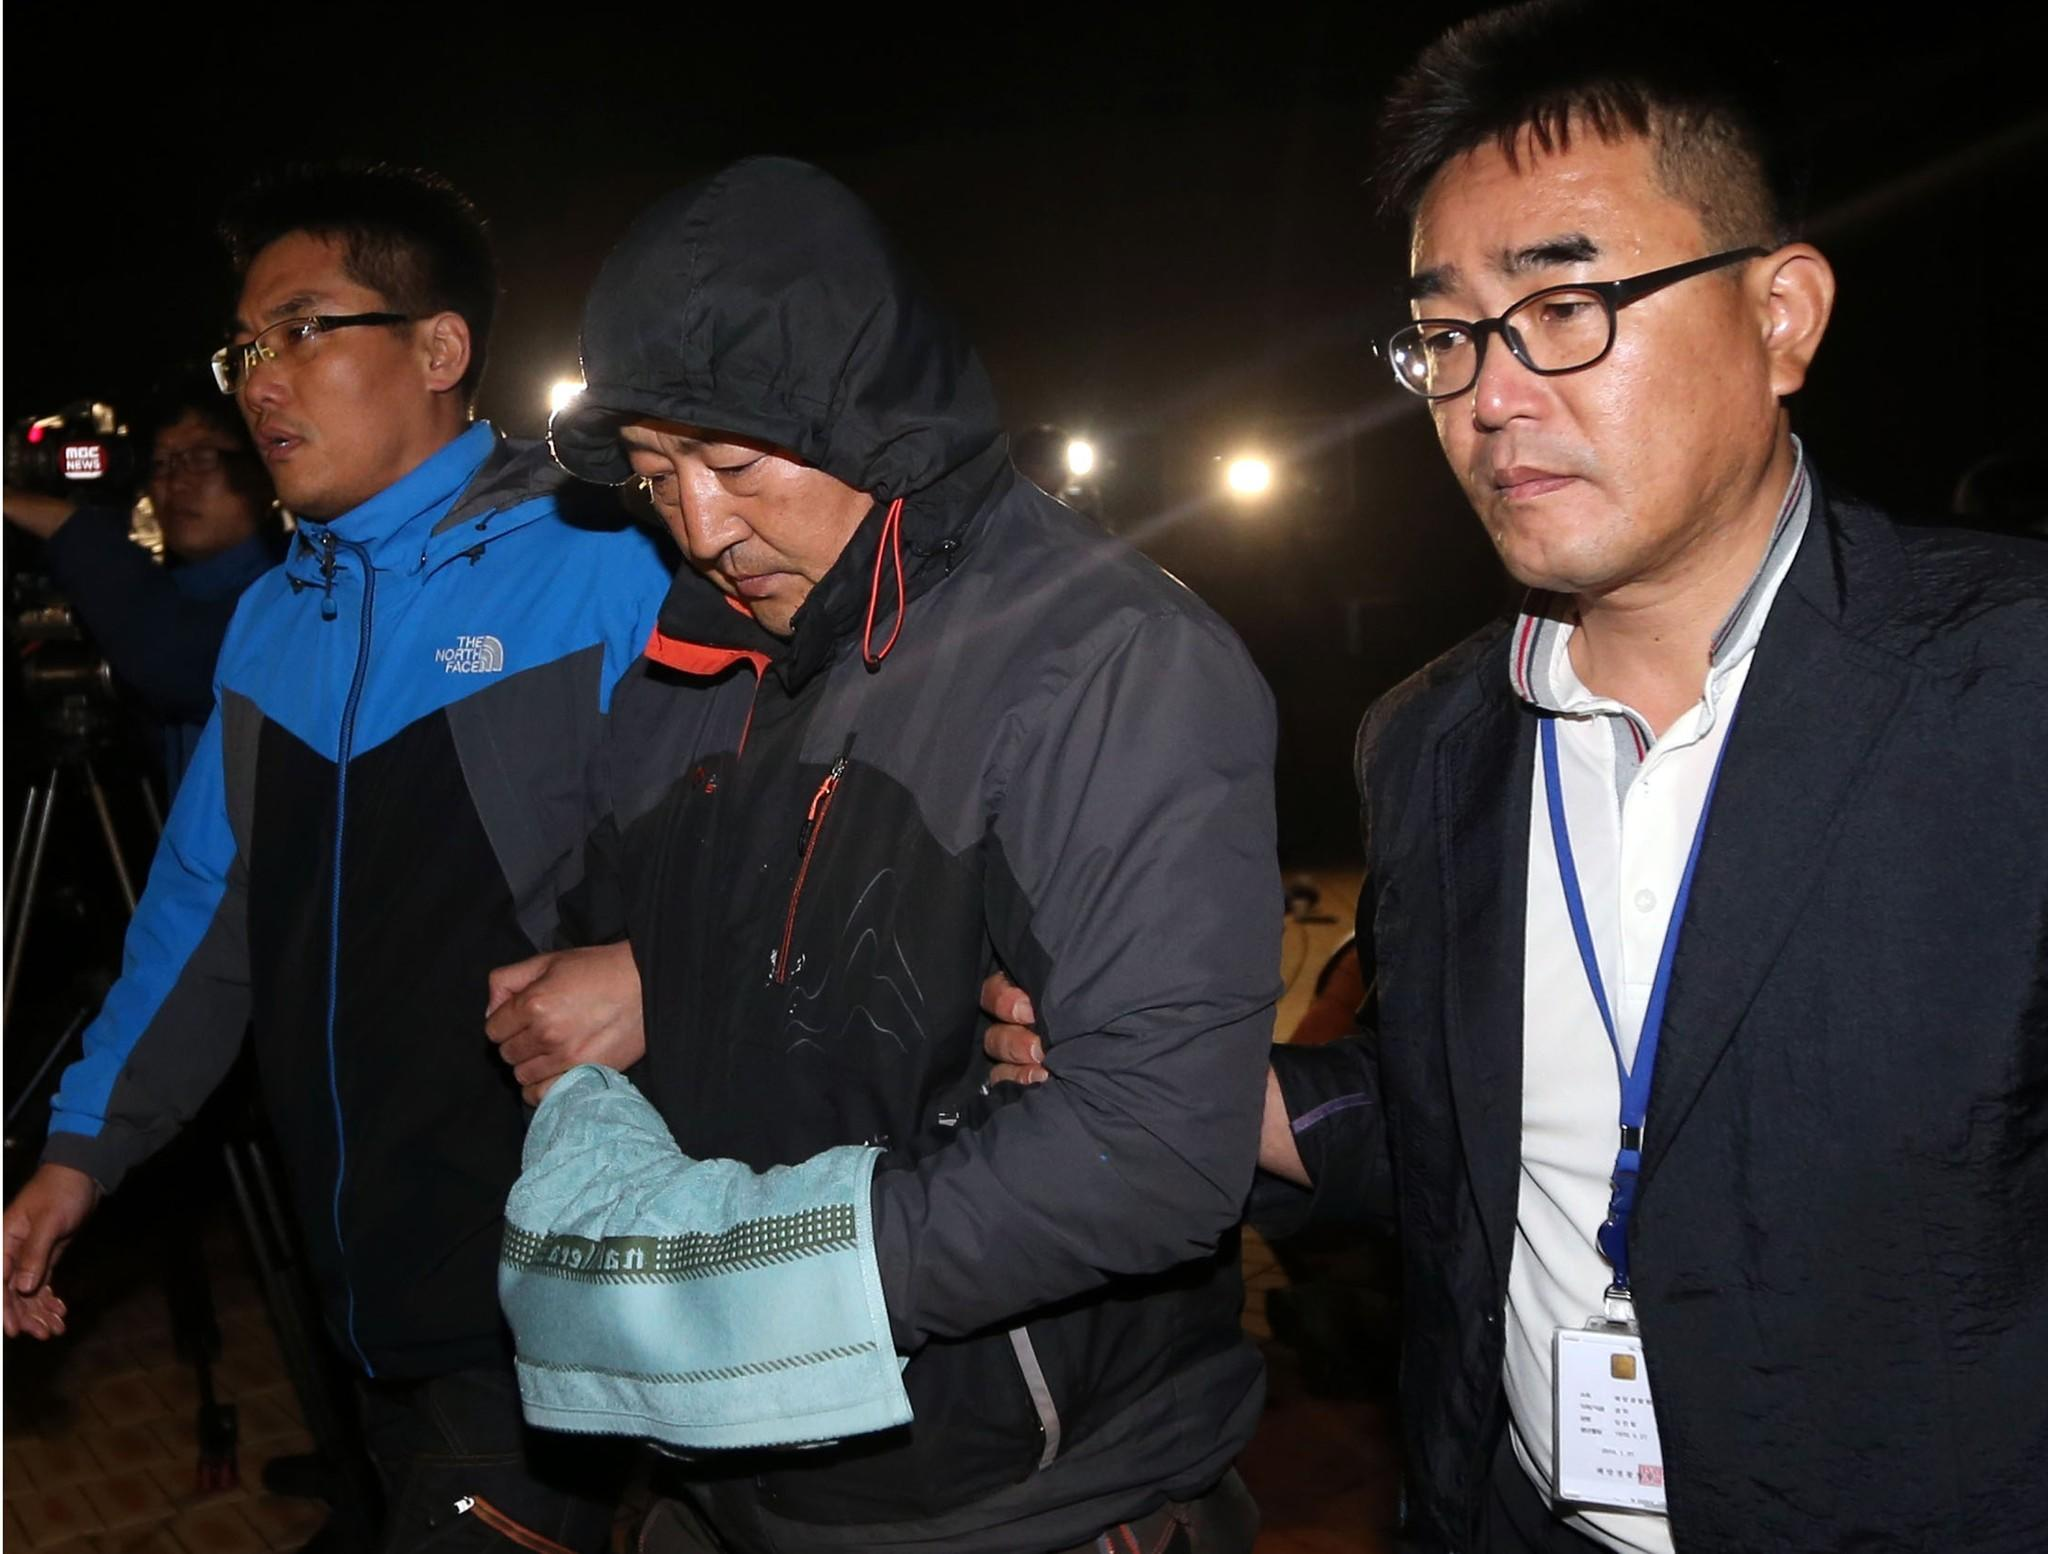 Lee Joon-seok, center, the captain of the sunken ferry Sewol, leaves a court that issued a warrant for his arrest.